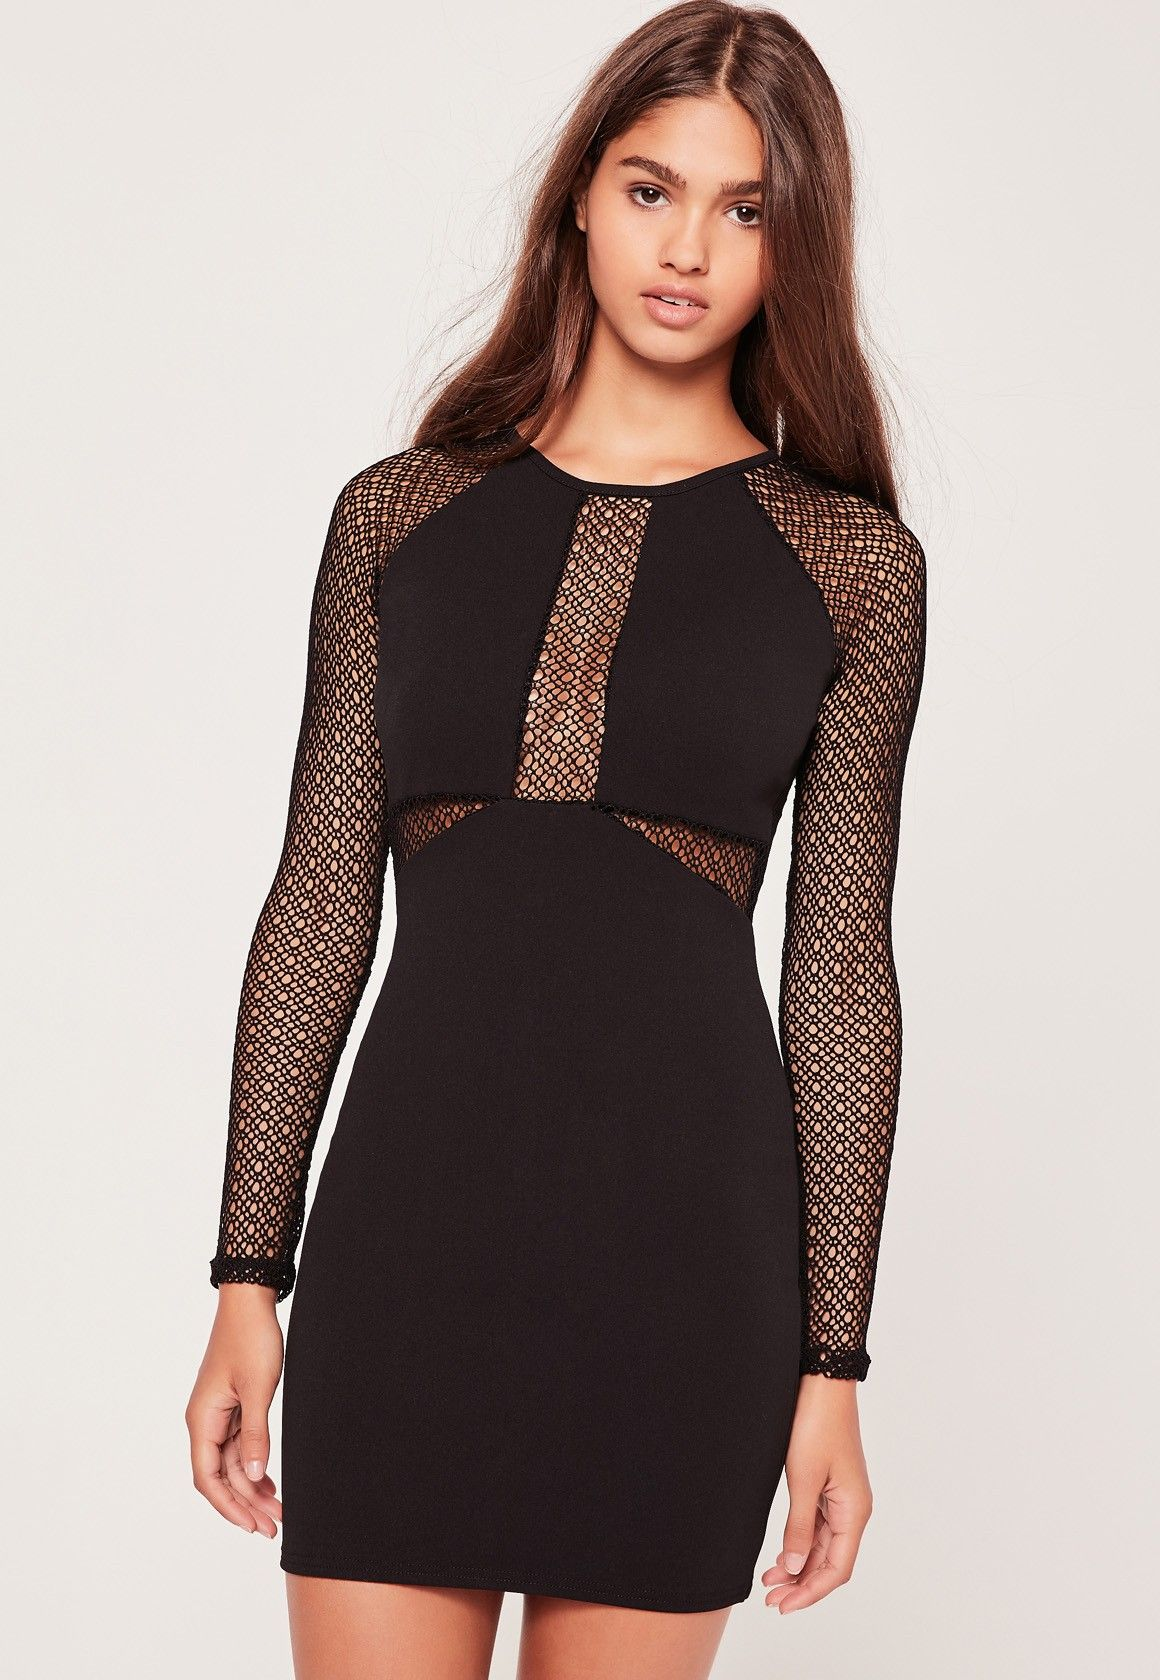 756f2253dea2 Missguided - Long Sleeve Fishnet Panel Bodycon Dress Black | Ladies ...